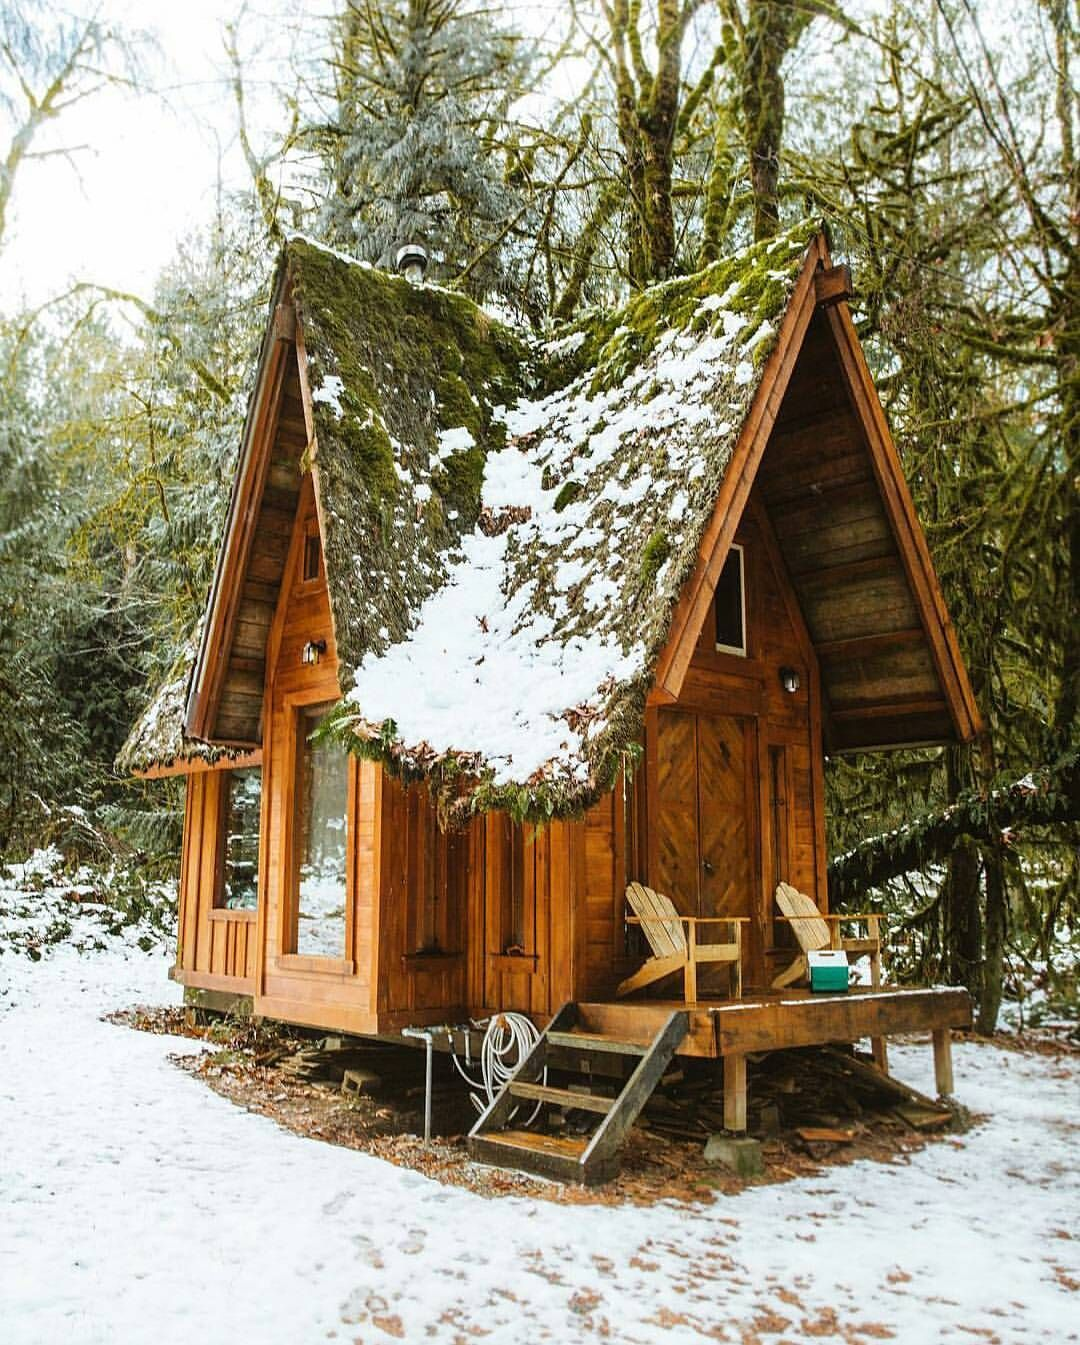 Cabin 200 Sq Ft Cabin With A Moss Covered Roof 1080 1345 Tiny House Cabin Little Cabin Cabins In The Woods